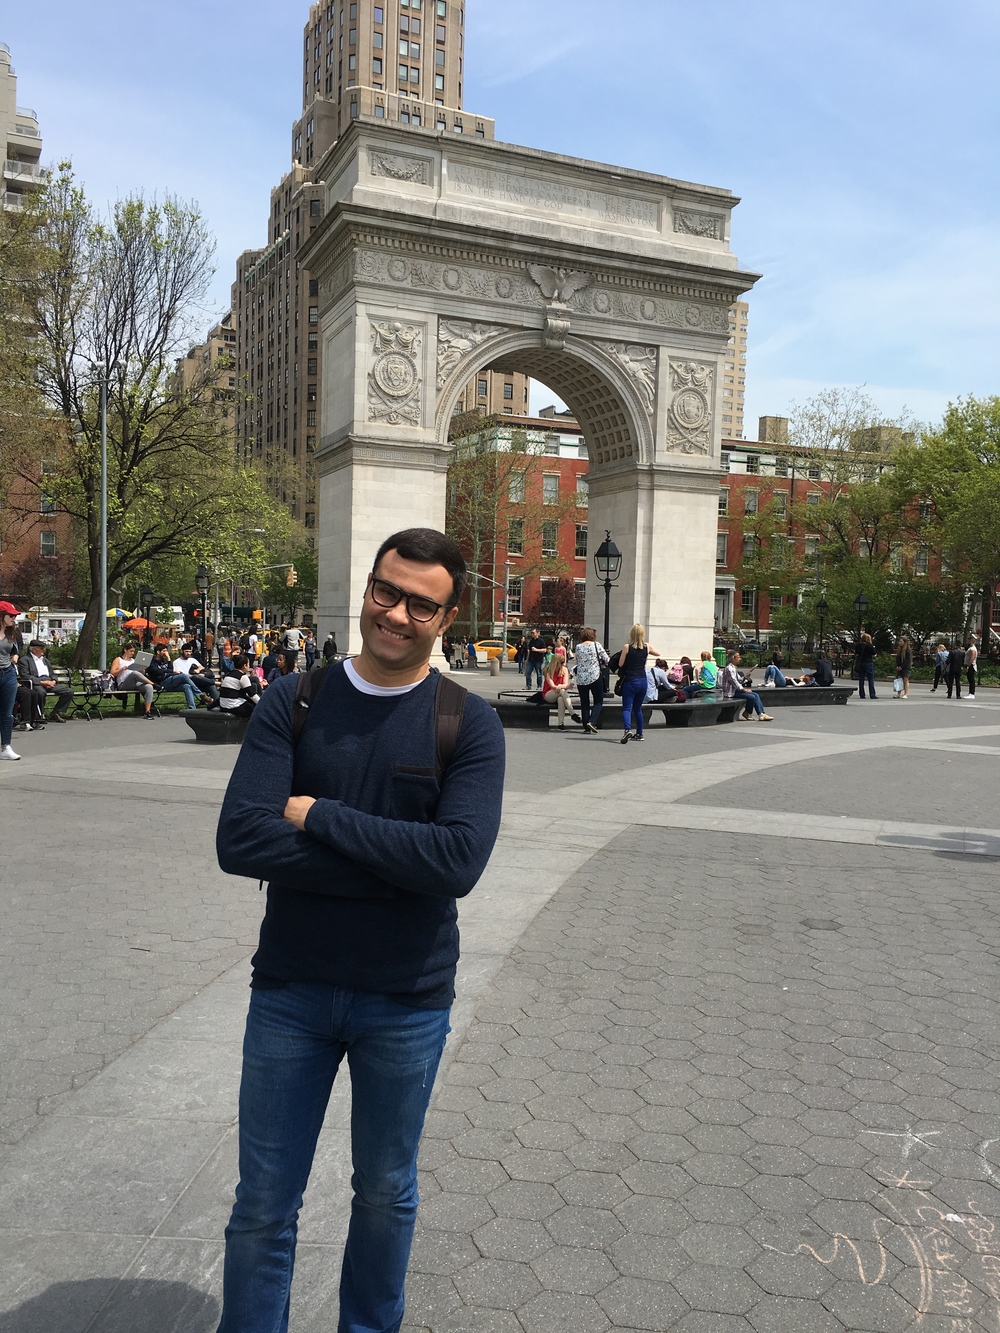 Hanging out in Washington Square Park